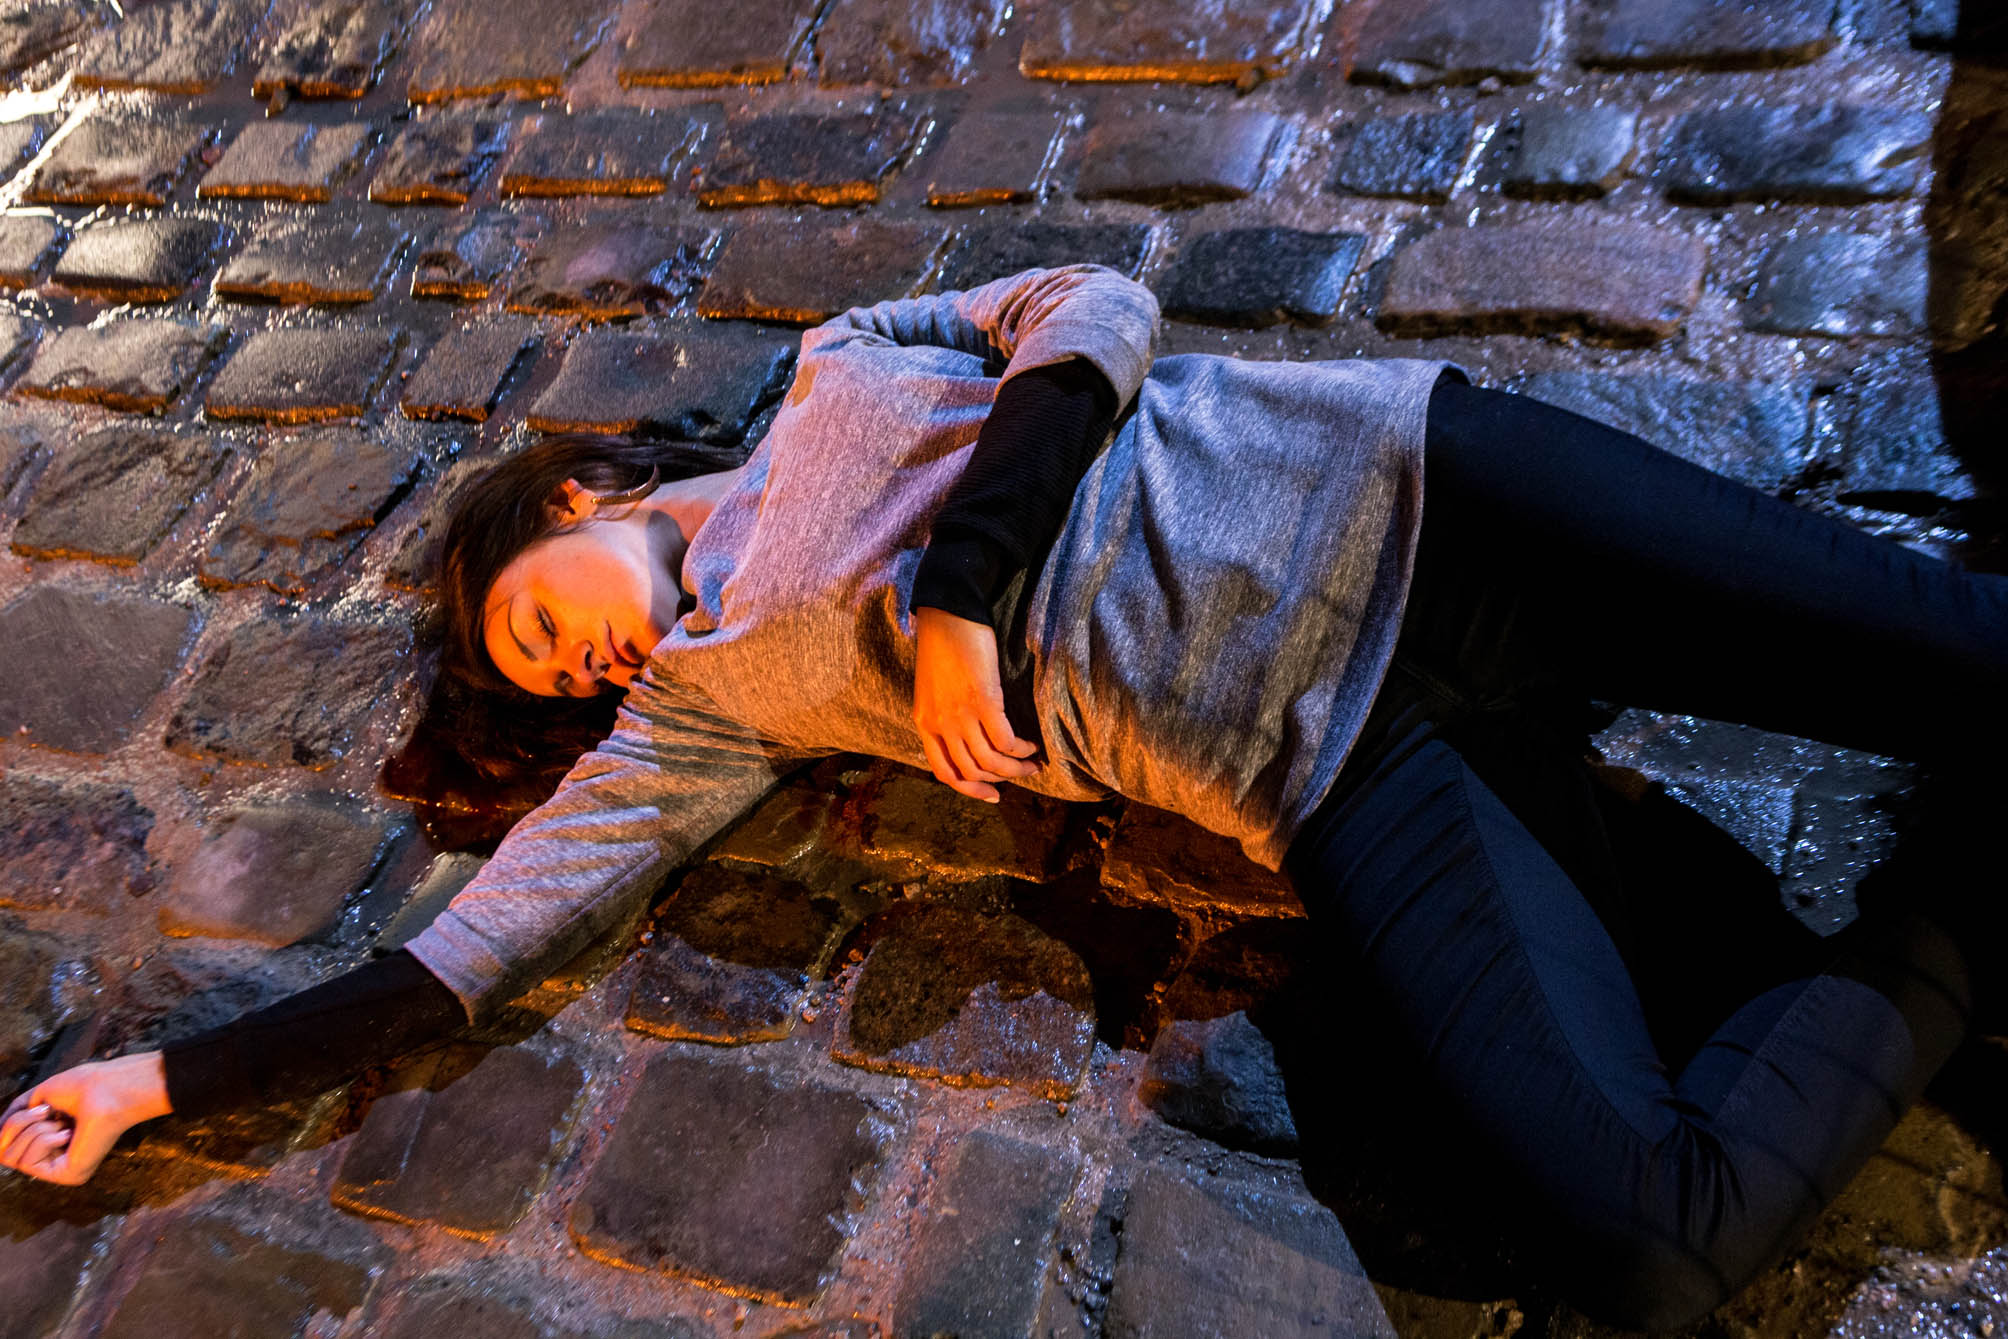 Editorial use only Mandatory Credit: Photo by ITV/REX/Shutterstock (3785776bd) Coronation Street barmaid Tina McIntyre, as played by Michelle Keegan, lies motionless on the cobbles after plunging from the balcony of the builder's yard flat following a dramatic showdown. 'Coronation Street' TV Programme - May 2014 Coronation Street Tuesday 27 June